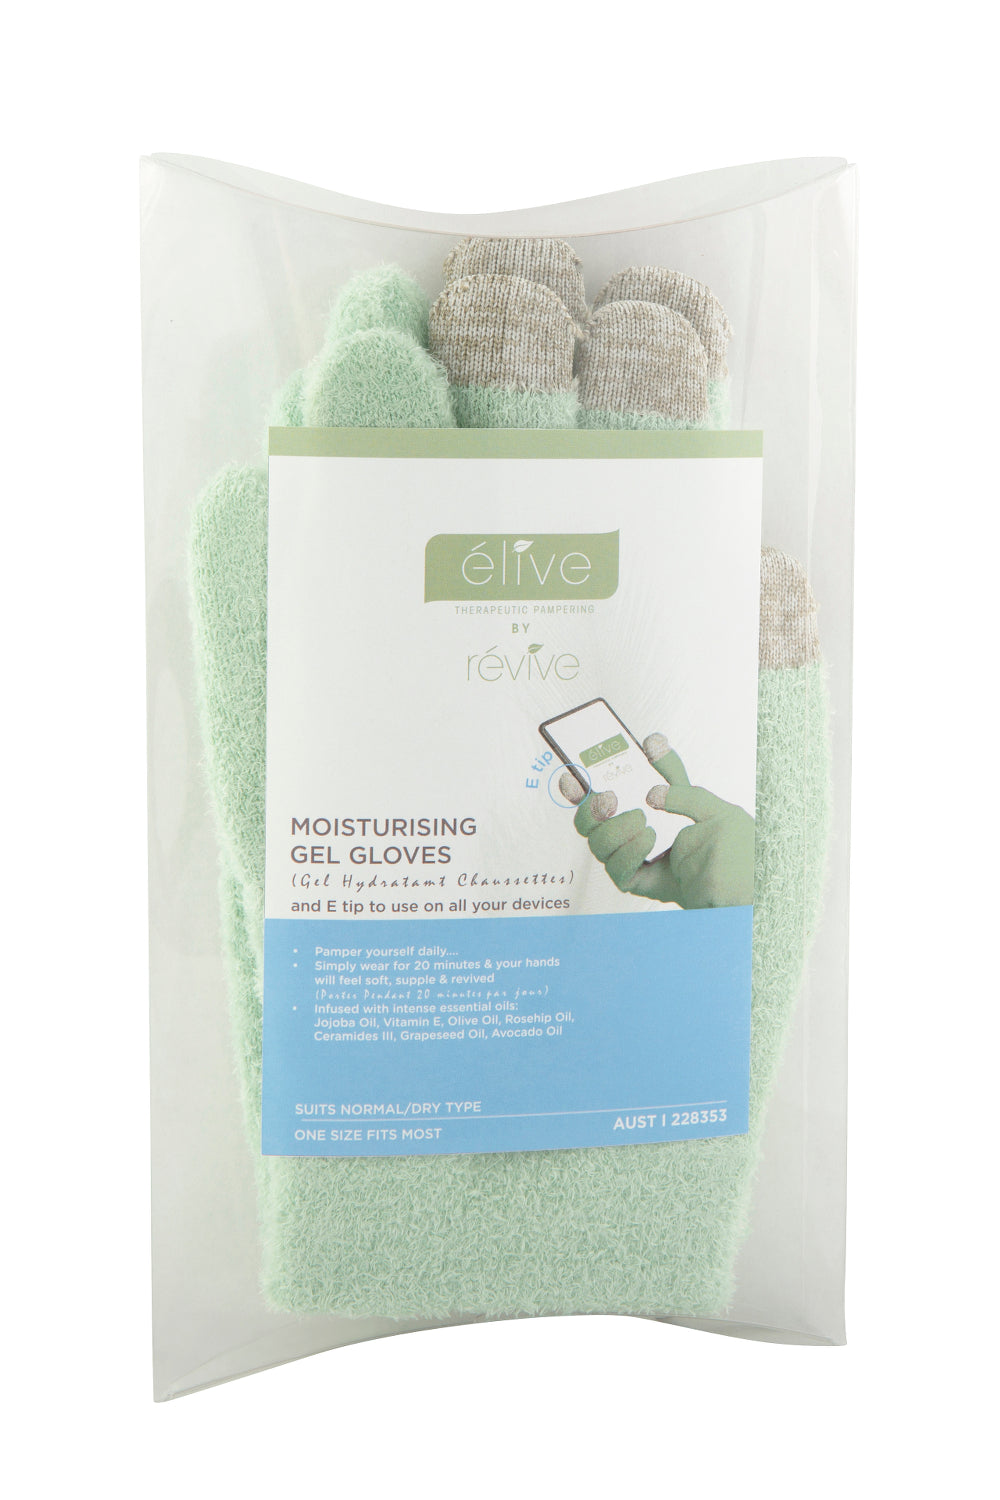 élive by révive Gel eGloves | Révive Global | Therapeutic Skincare Products